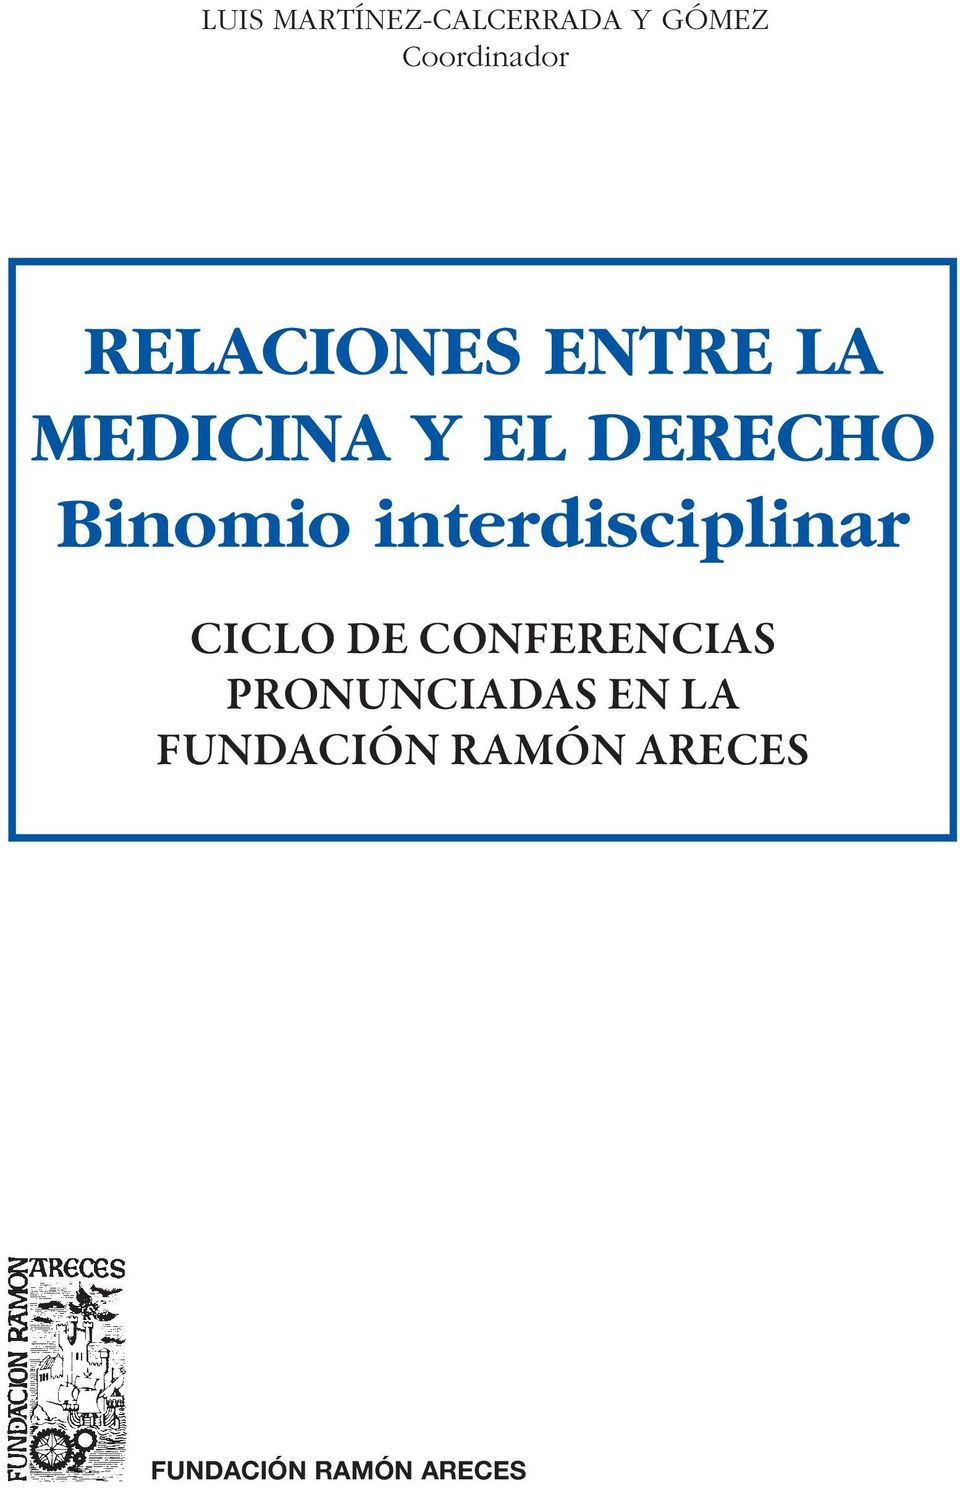 interdisciplinar CICLO DE CONFERENCIAS